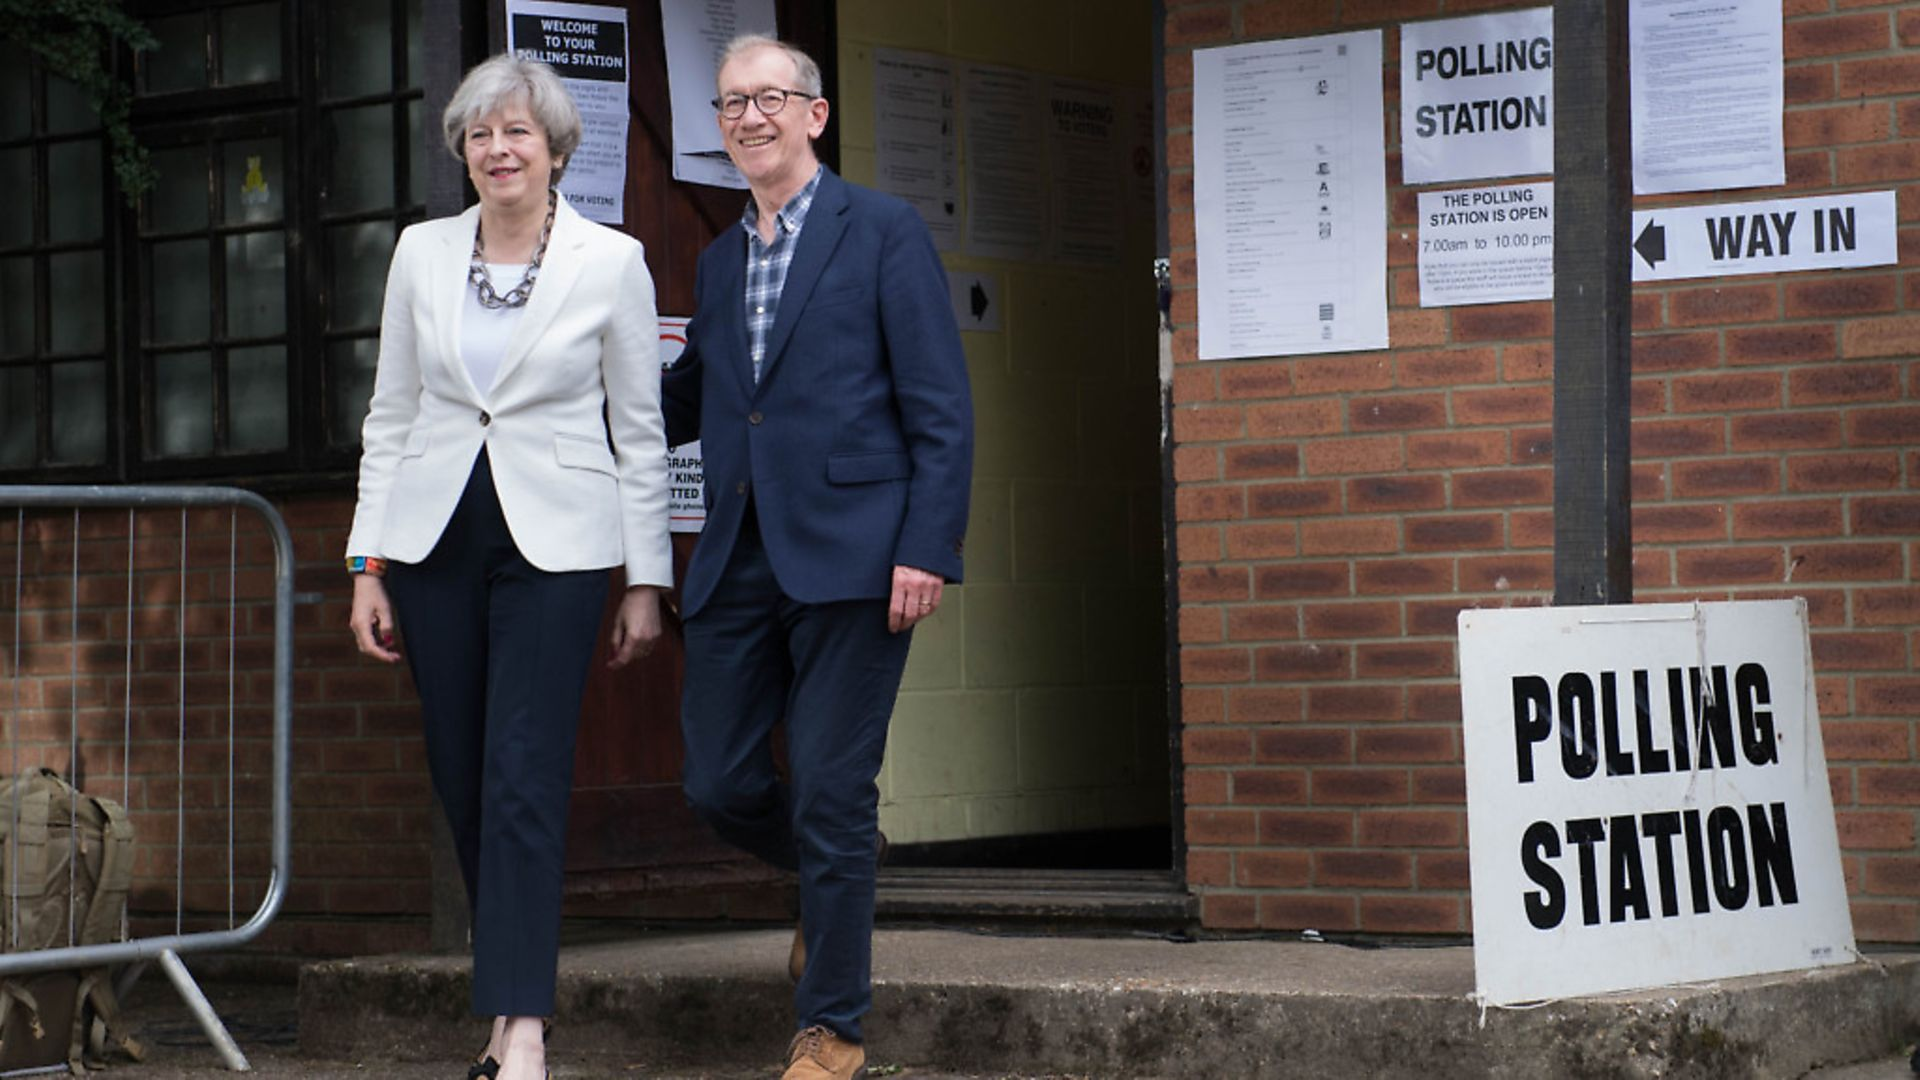 Prime Minister Theresa May casts her vote in Sonning, Berkshire in the 2017 General Election. Photograph: Stefan Rousseau/PA. - Credit: PA Wire/PA Images